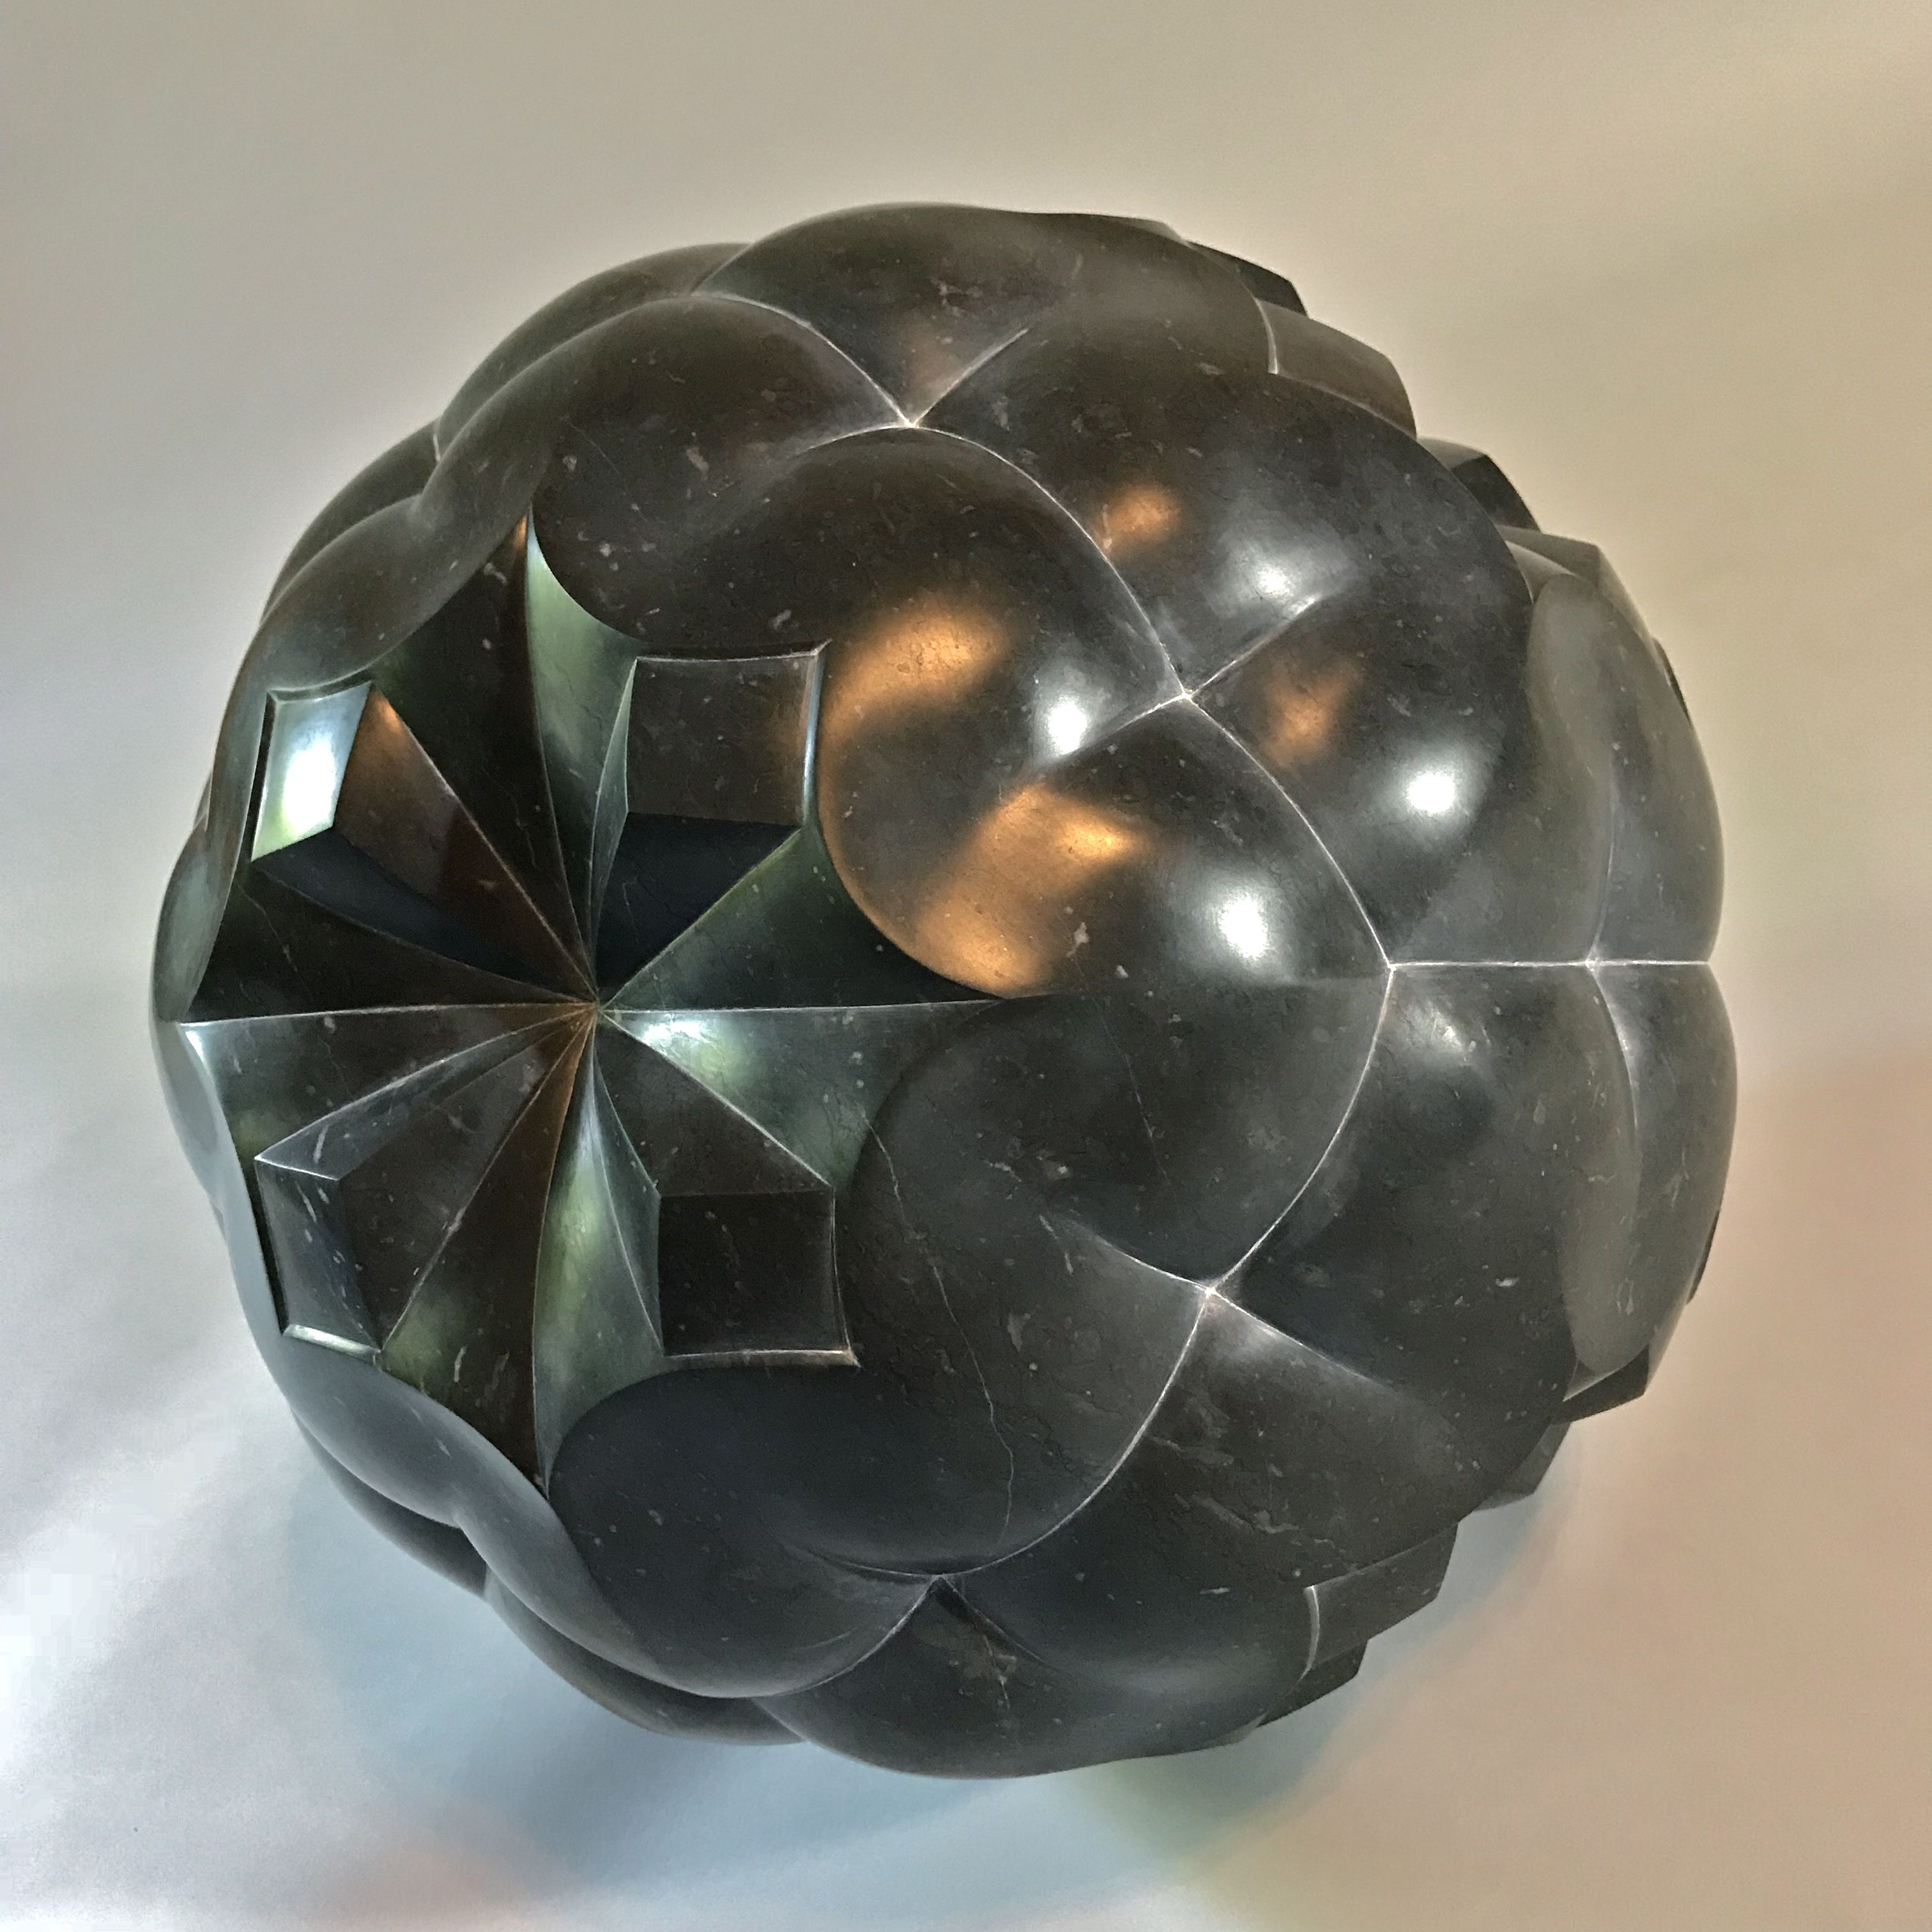 Spherical division of space